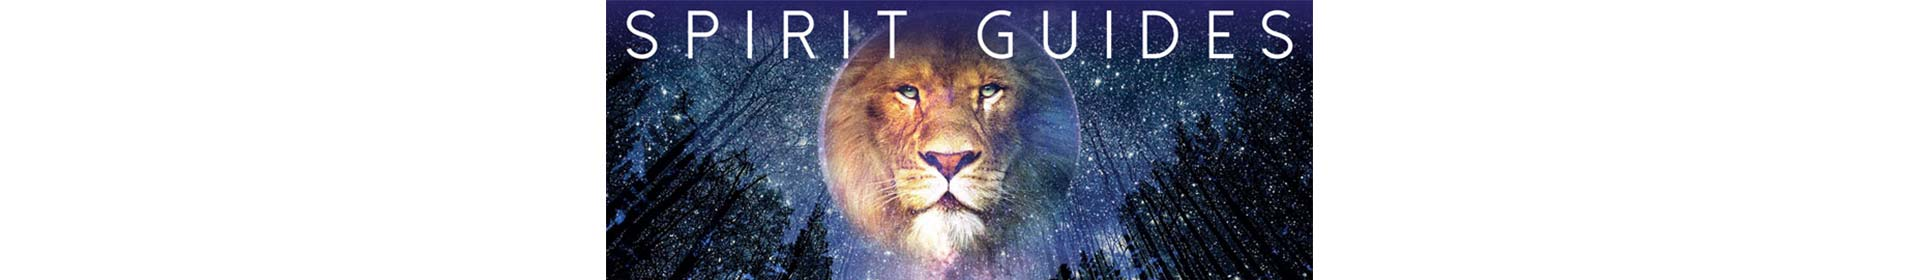 Spirit Guides: Jivamukti Focus of the Month